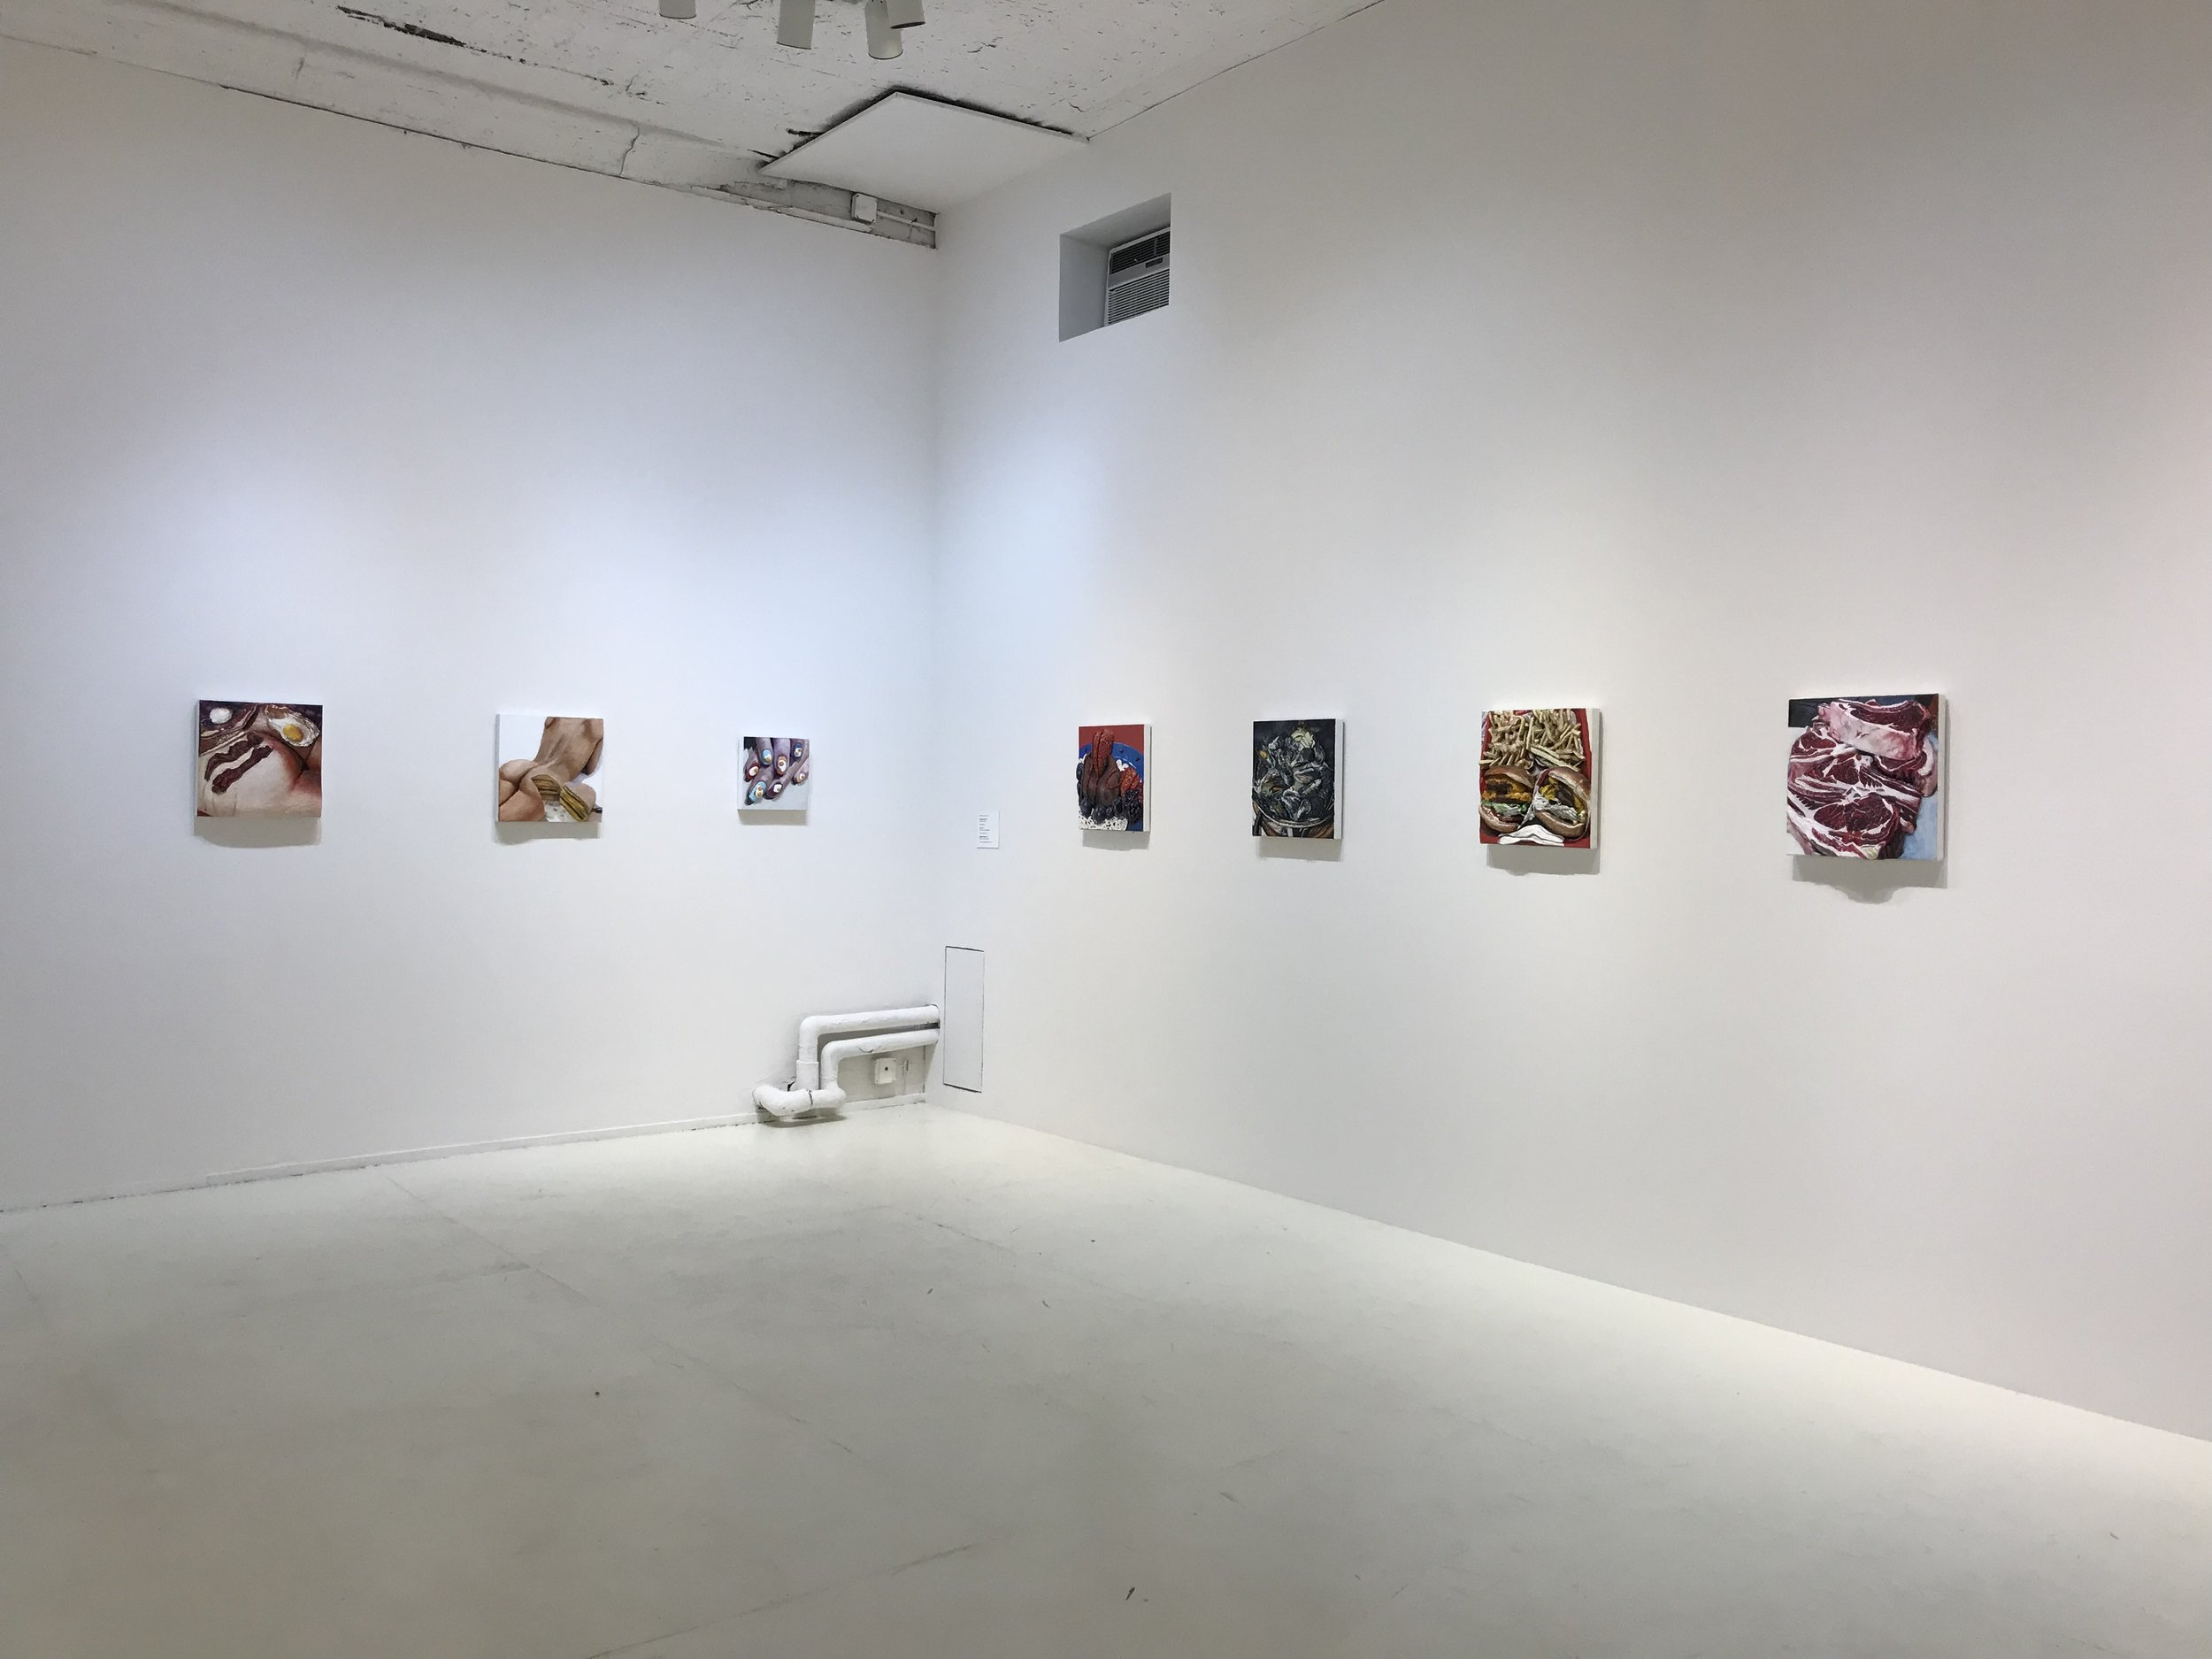 Installation view at PS1. Photo by Nick Naber